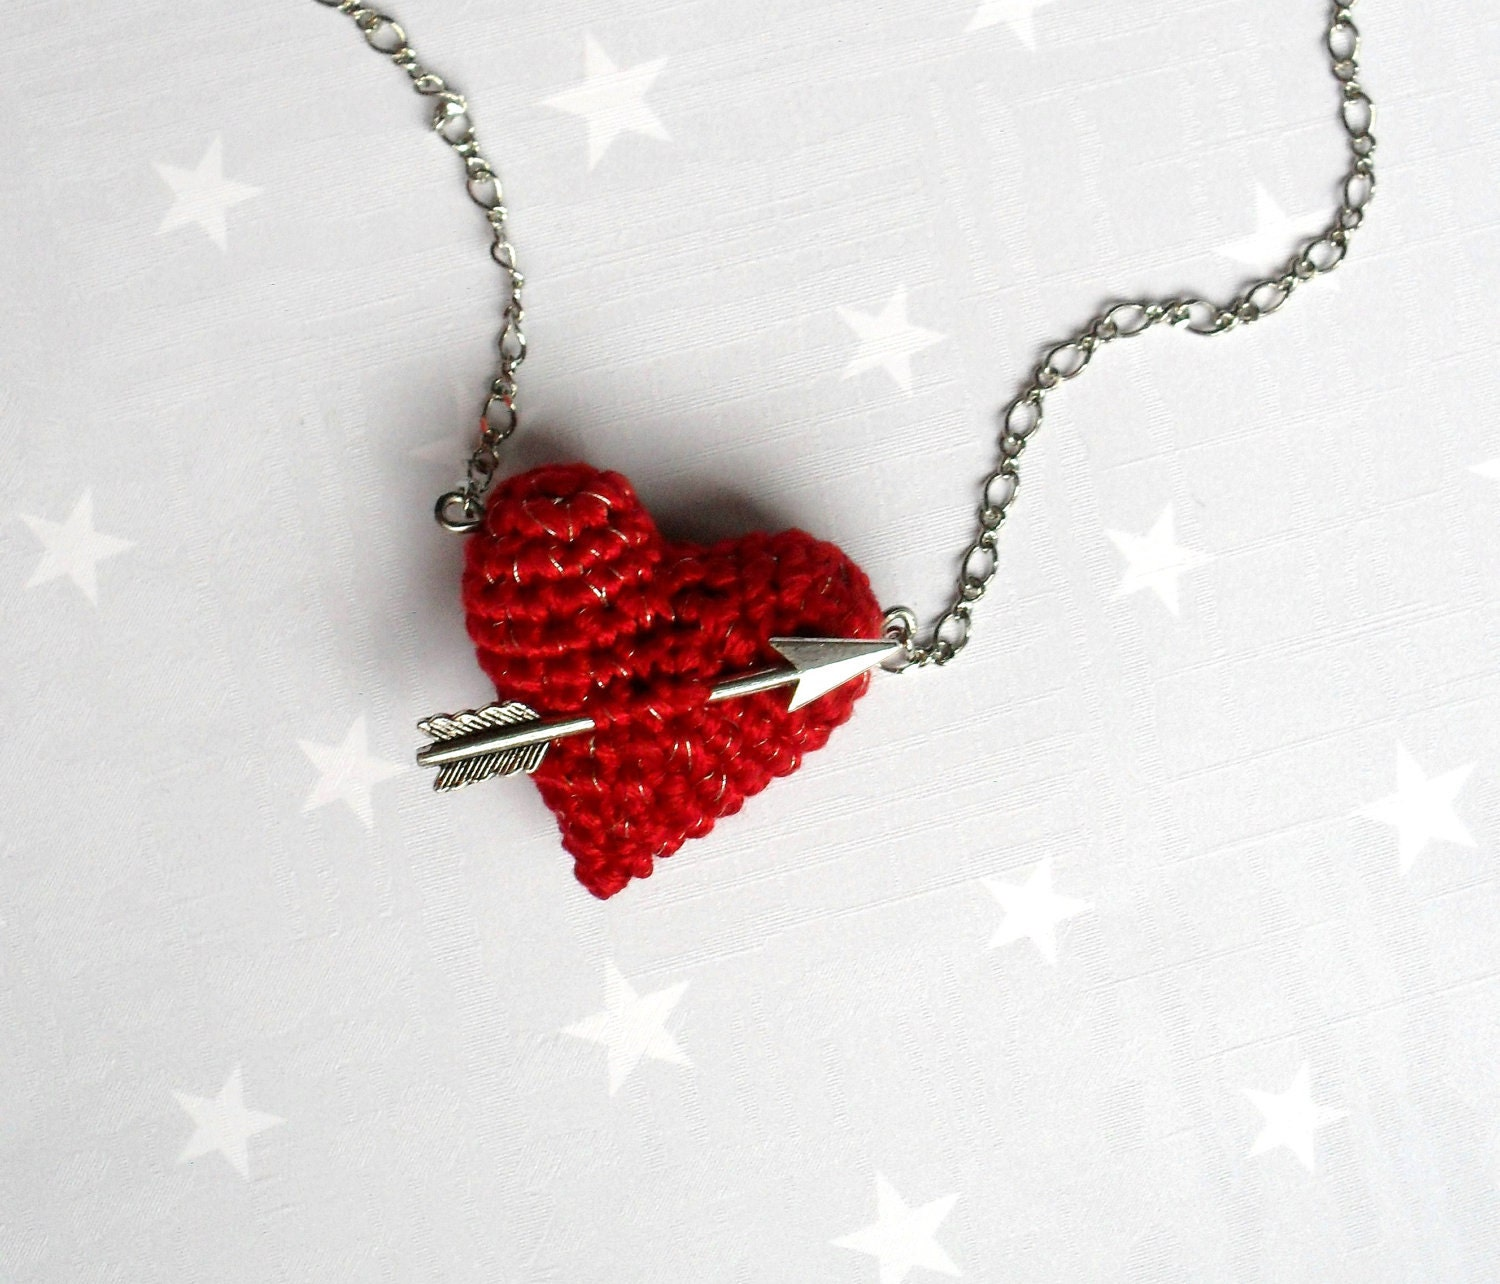 Free Crochet Heart Necklace Pattern : Red Heart Necklace www.galleryhip.com - The Hippest Pics